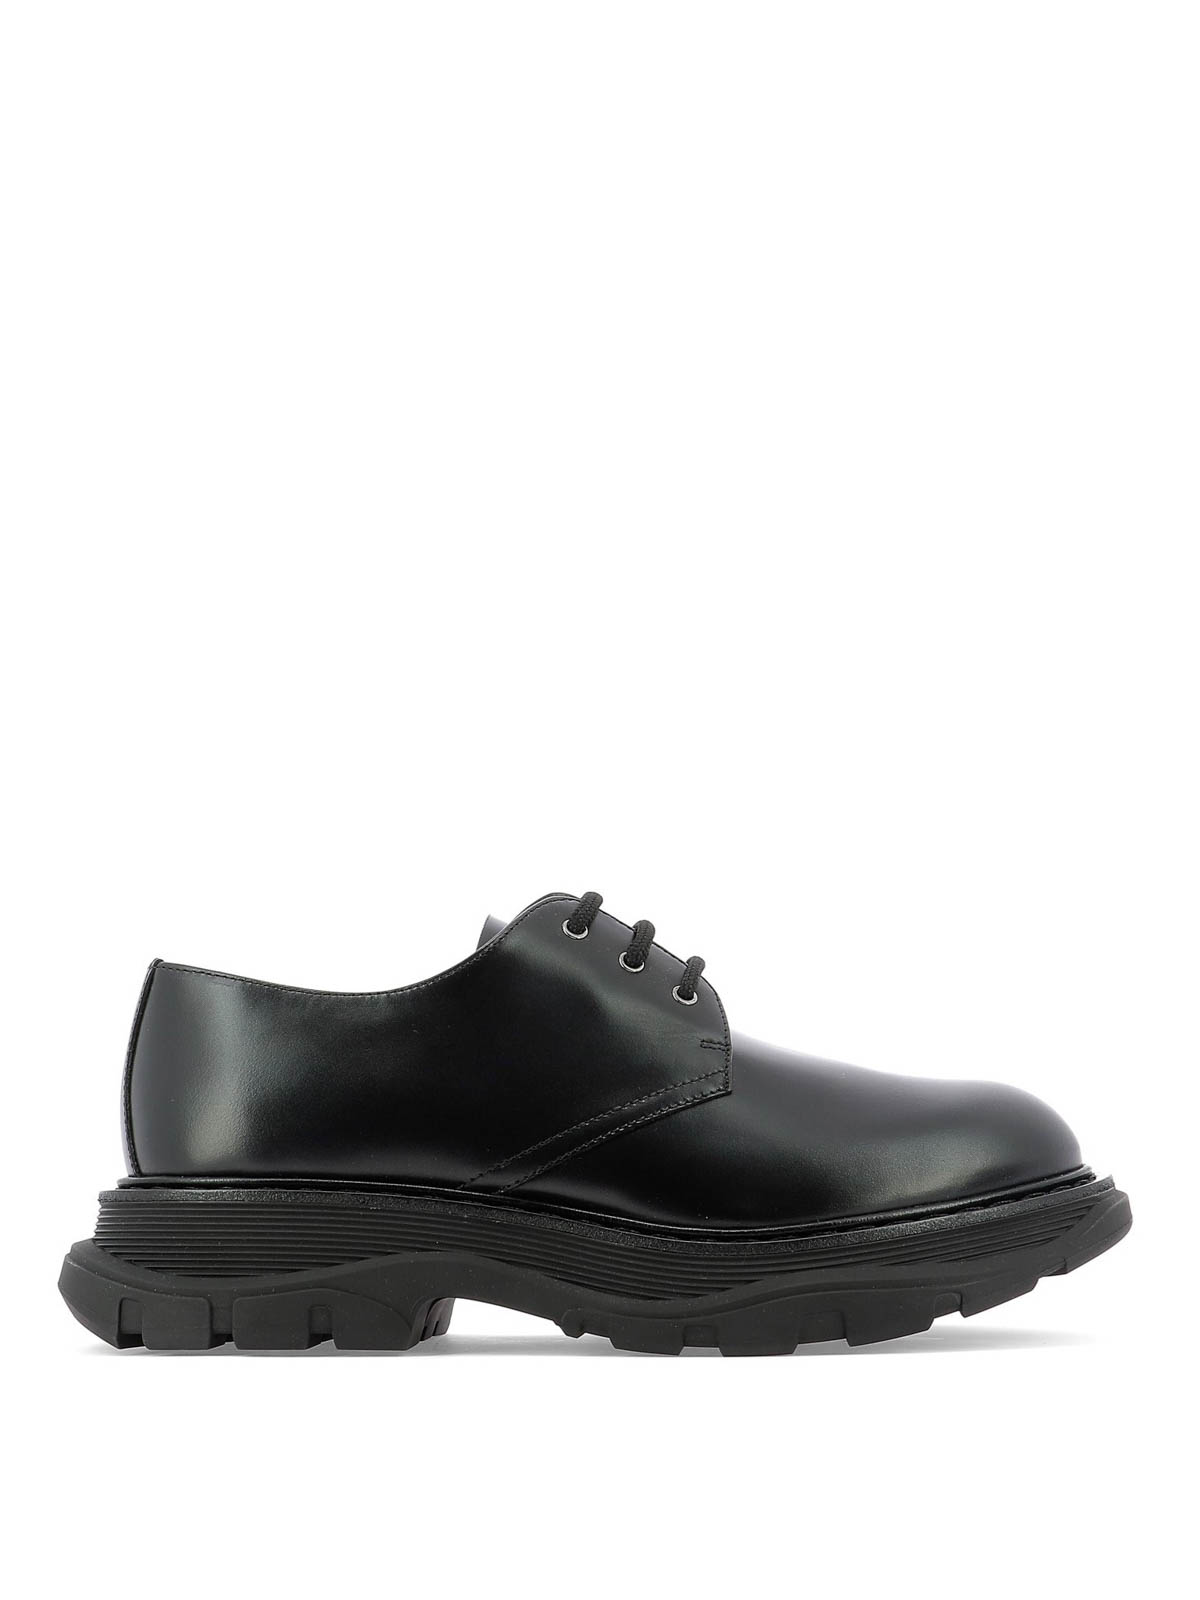 Alexander Mcqueen MAXI SOLE LEATHER DERBY SHOES